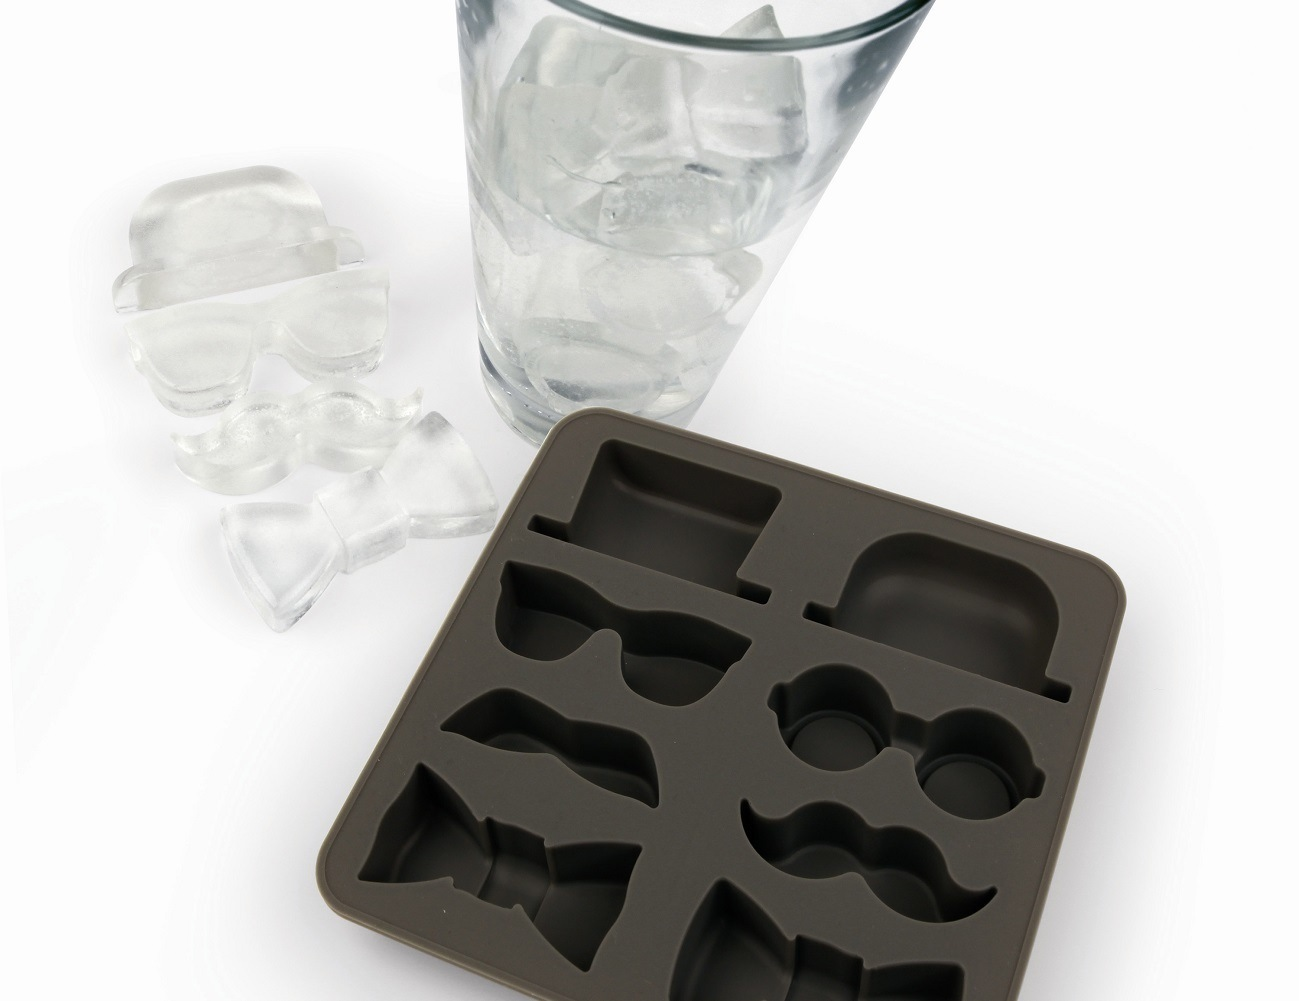 Kikkerland Gentleman's Silicone Ice Cube Tray